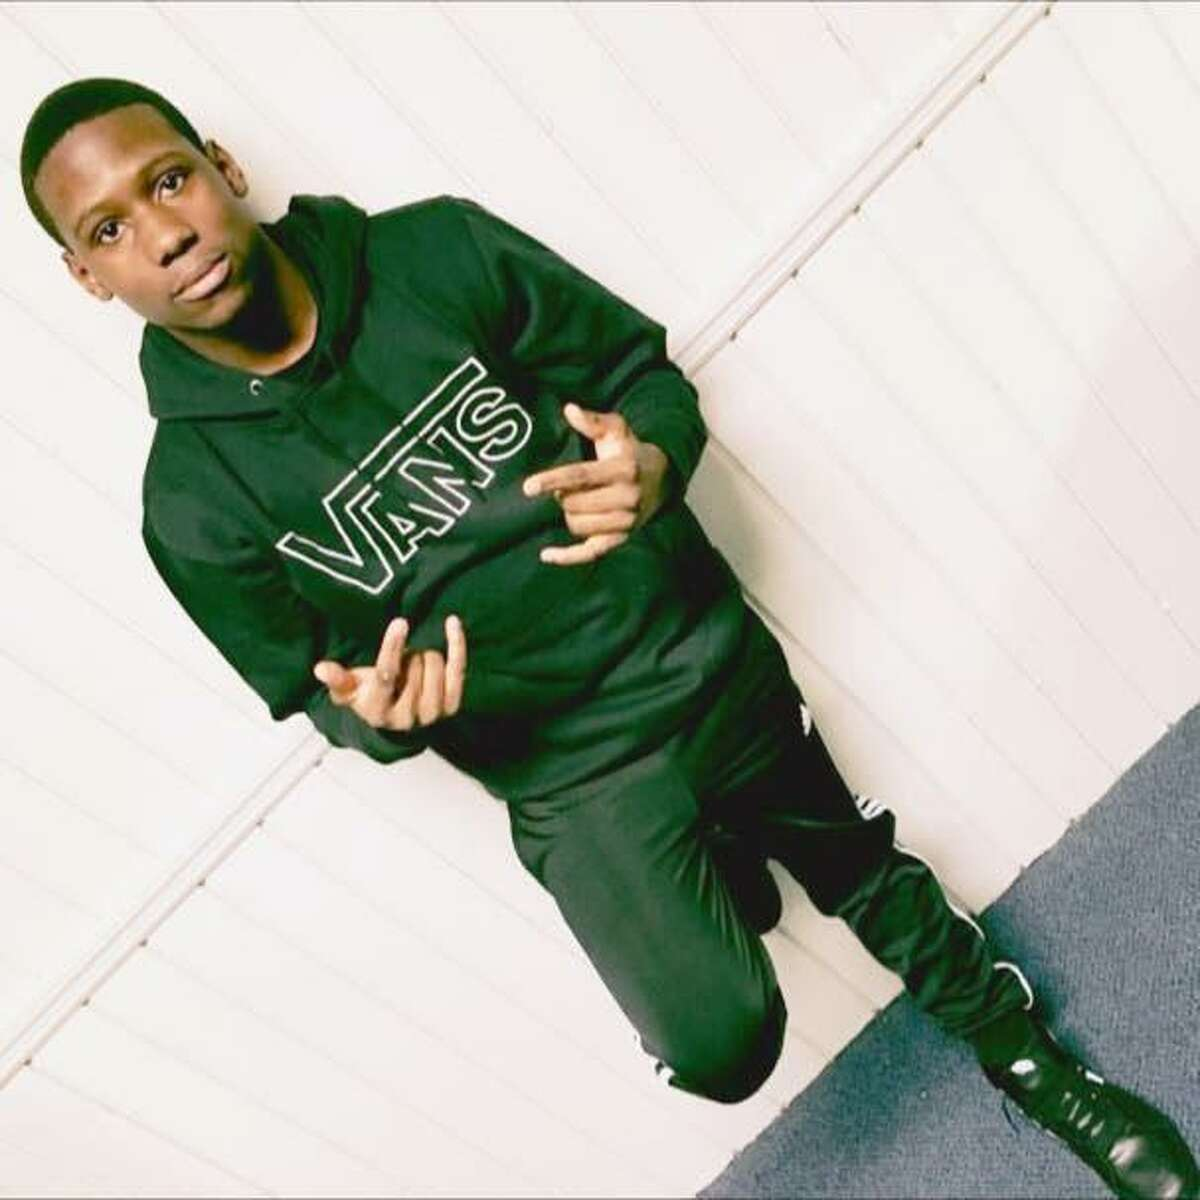 Marcus Hall was shot on Thursday, Sept. 20 at Southwood Square Apartments in Stamfords West Side neighborhood. He died on Saturday, Sept. 22, after his family decided to take him off life support.